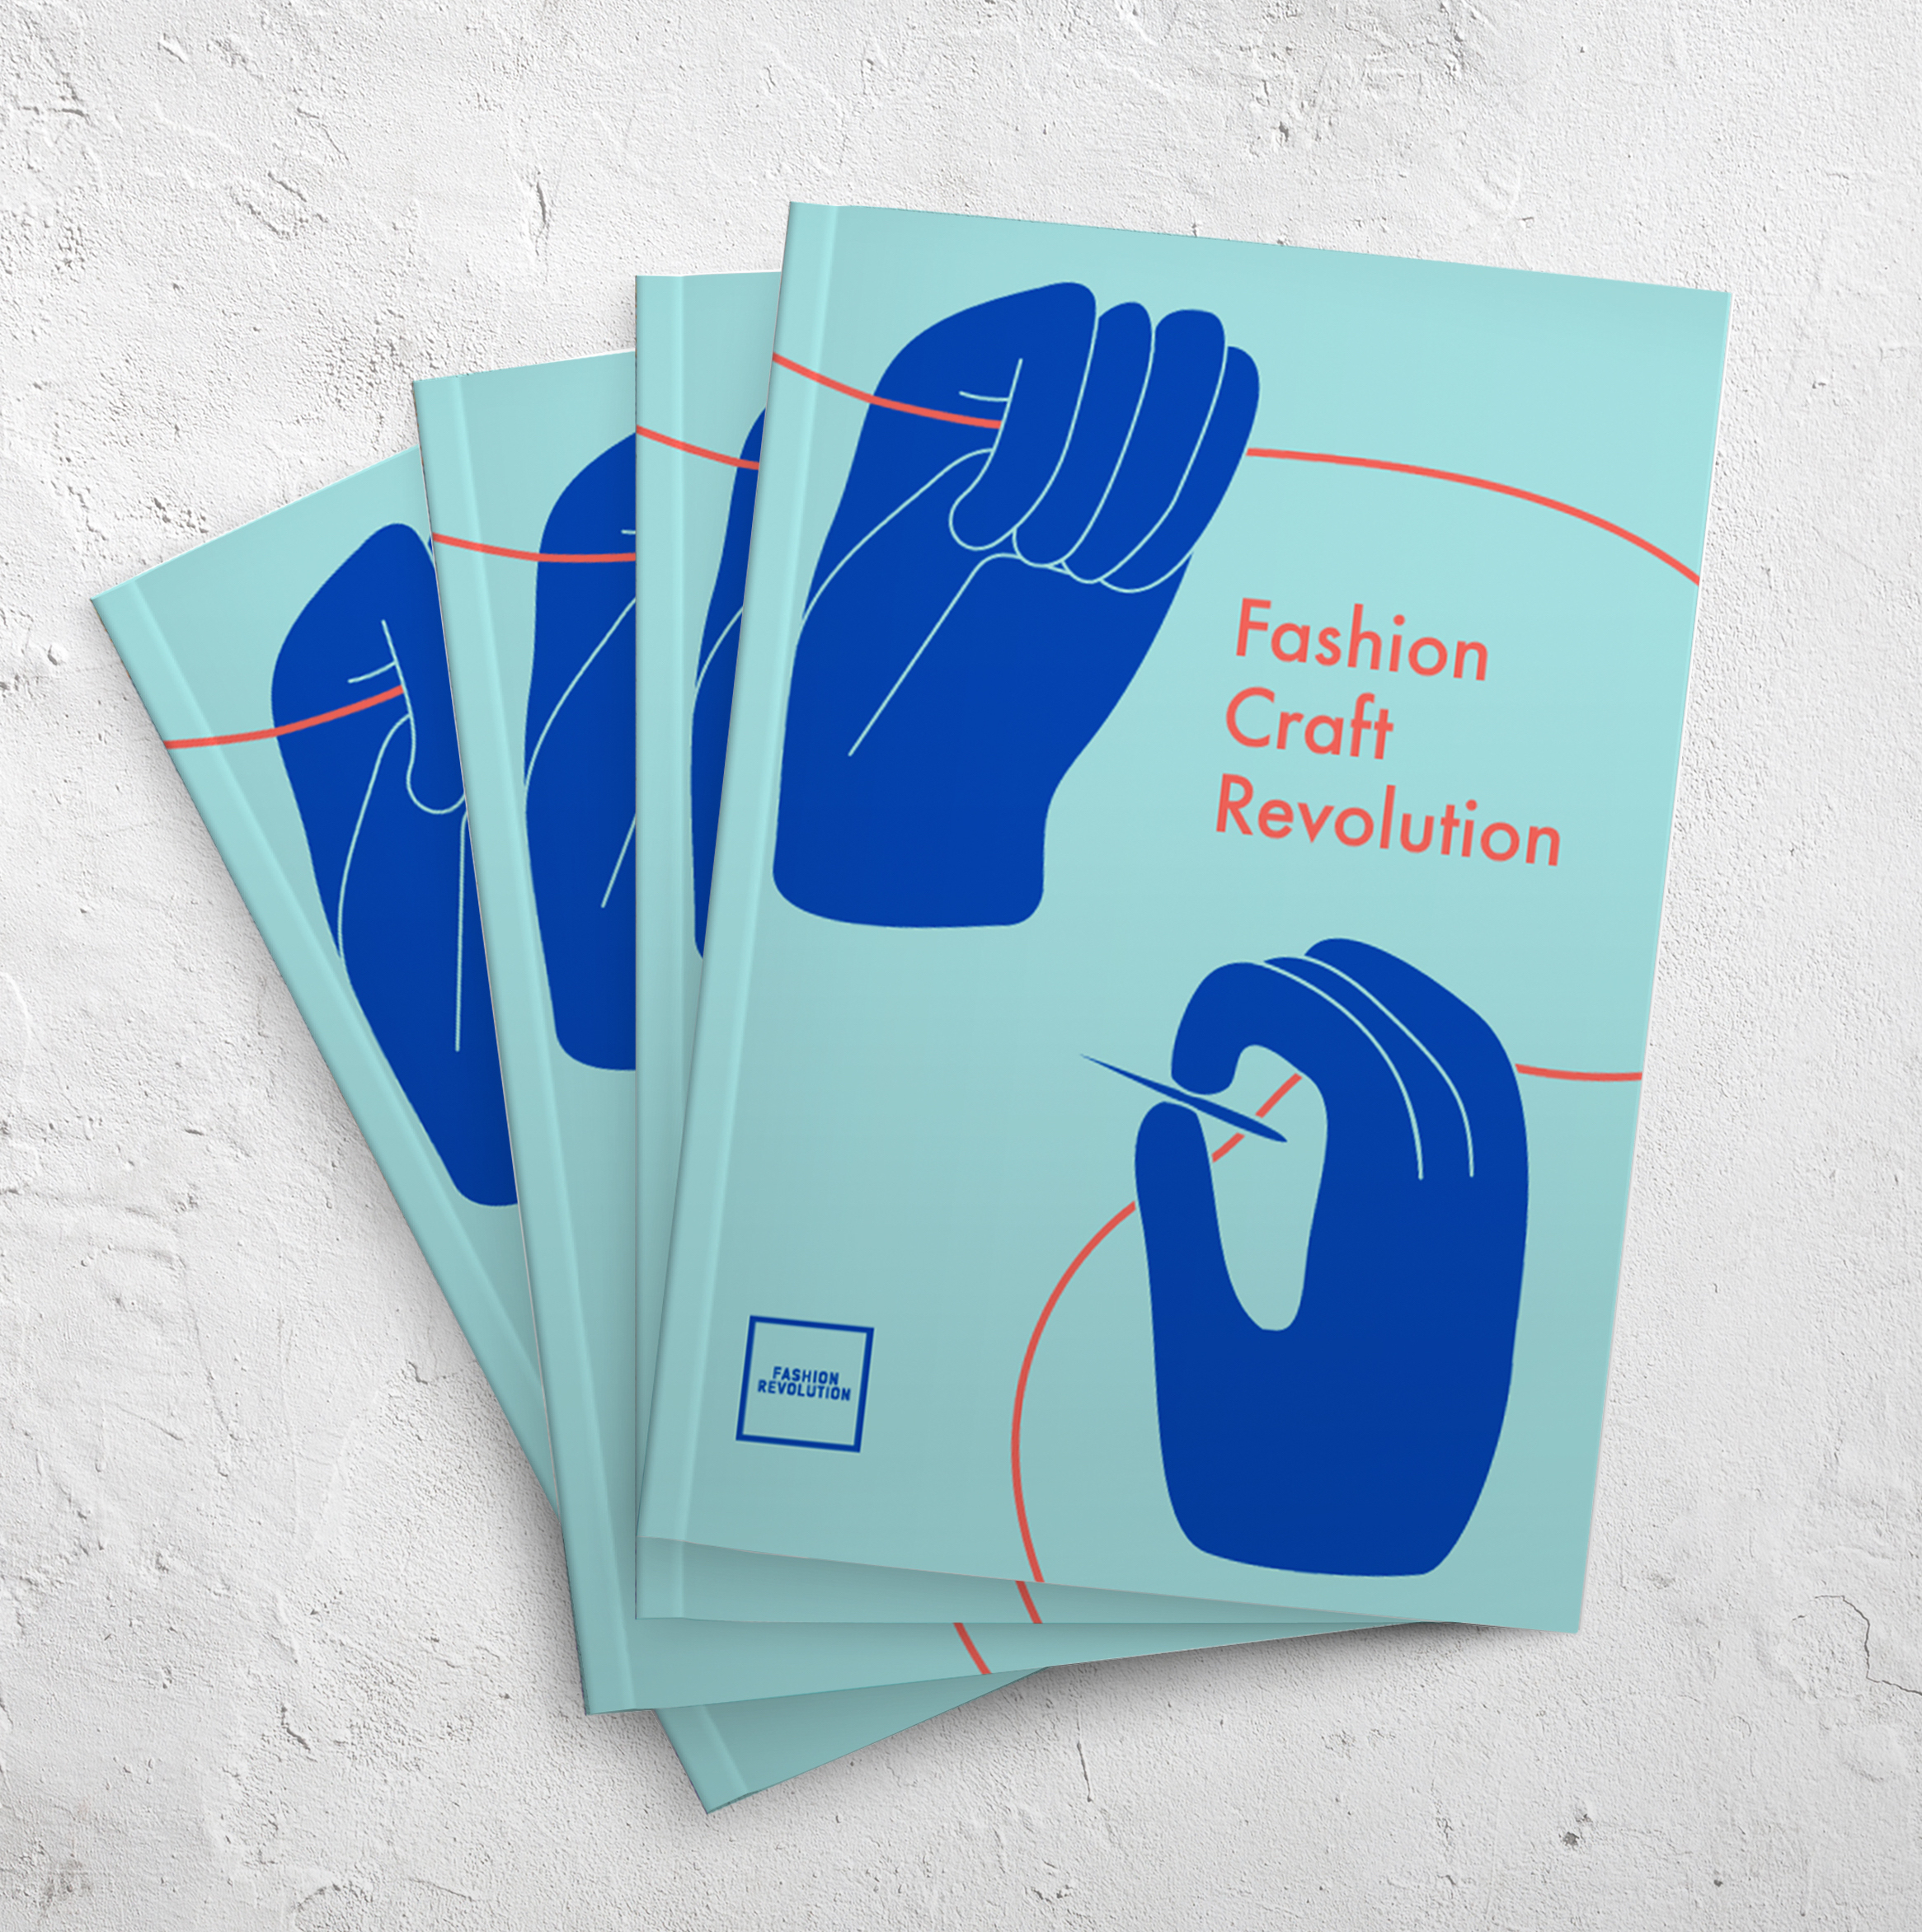 Read our latest fanzine - #004: FASHION CRAFT REVOLUTION